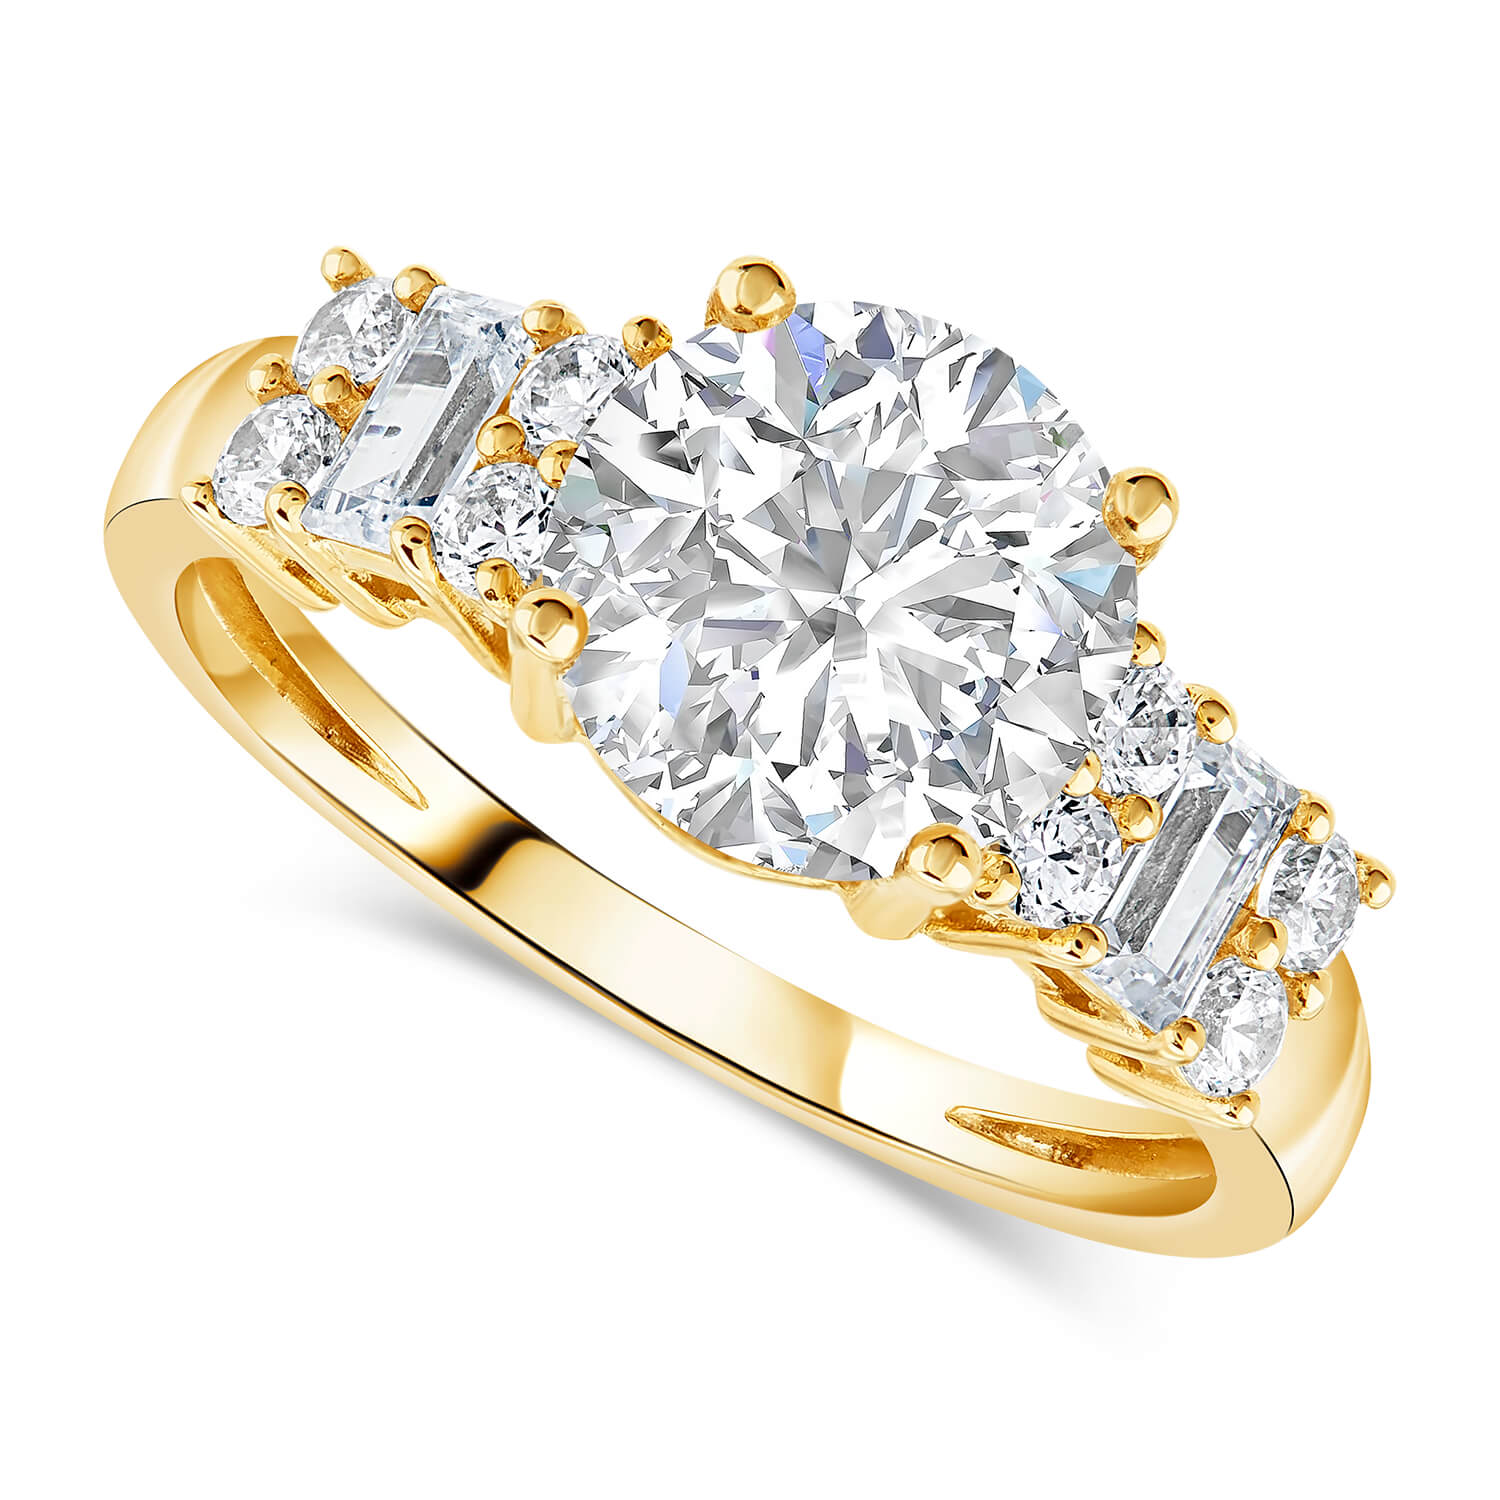 9ct Gold Round Brilliant and Baguette Cubic Zirconia Ring